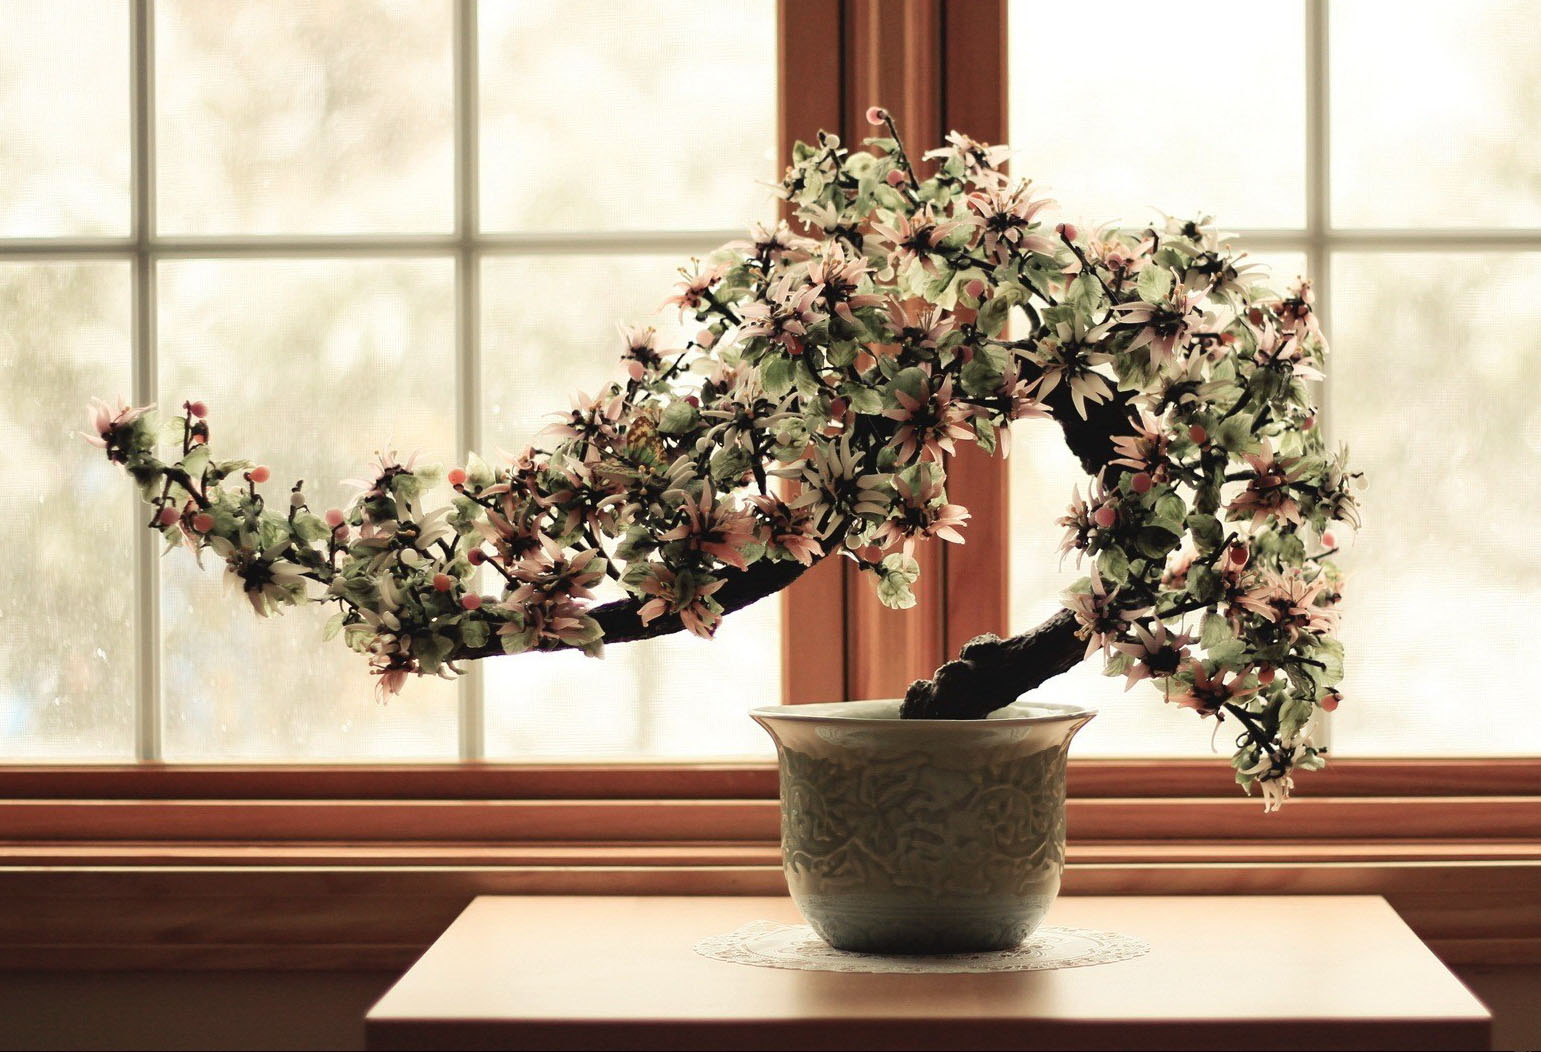 Come coltivare un bonsai e imparare l 39 arte ibonsai for Piante da interno